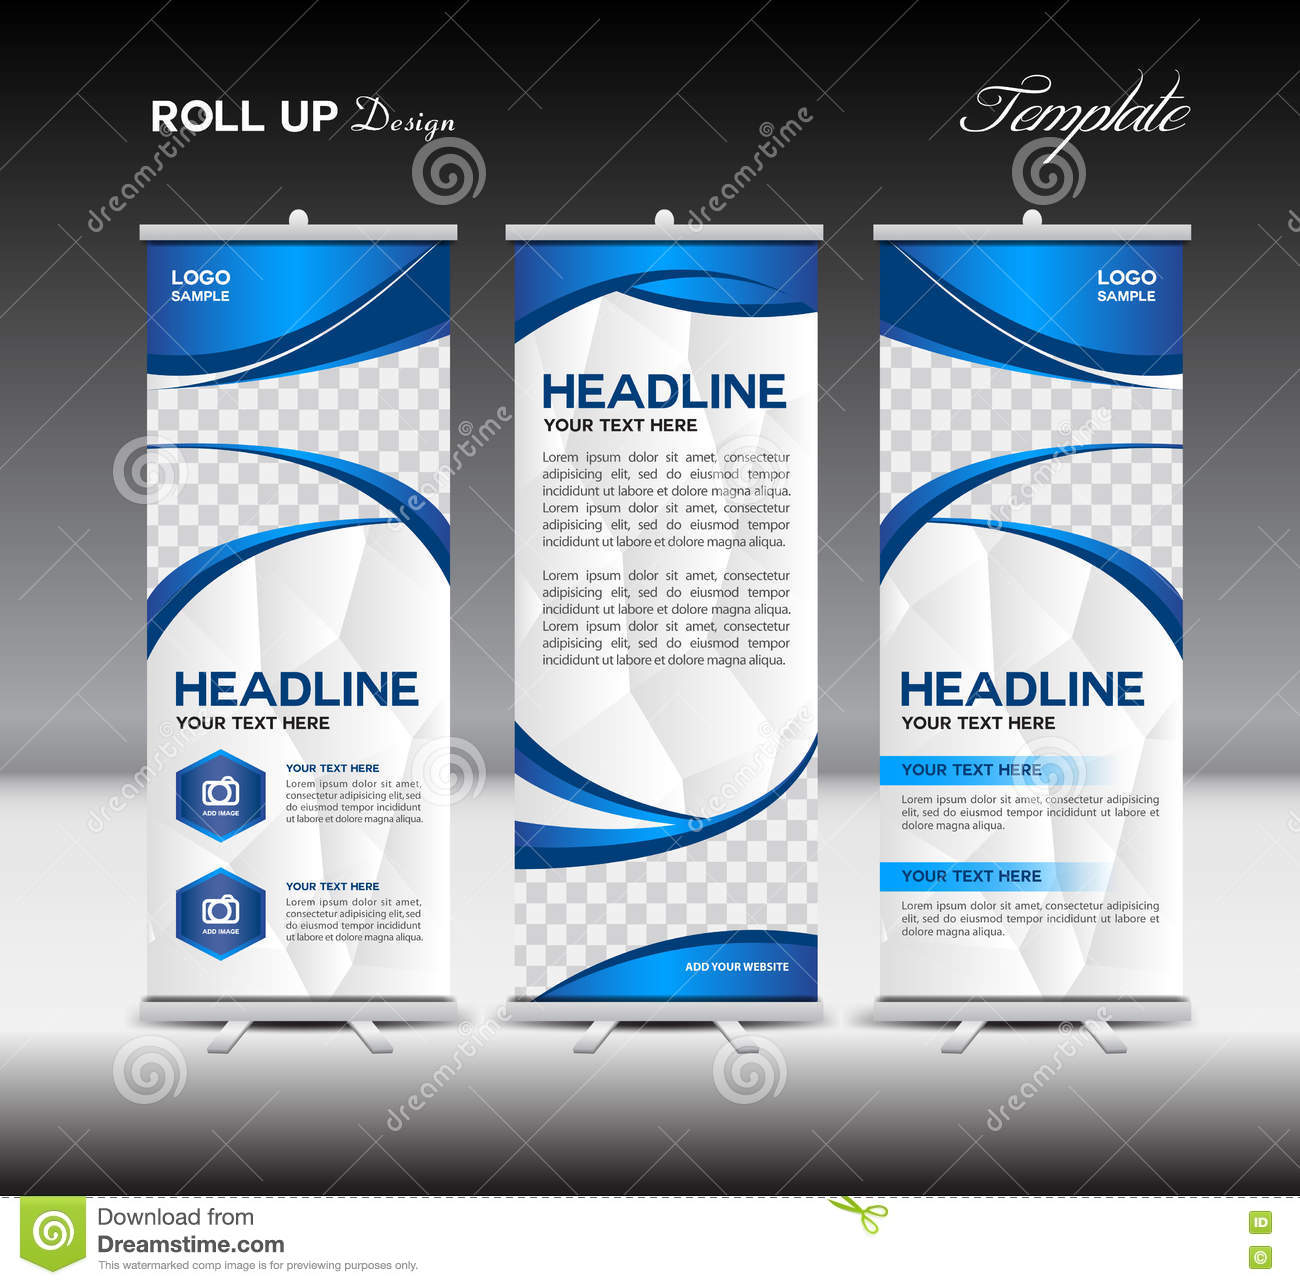 blue roll up banner template banner design advertisement stock blue roll up banner template banner design advertisement